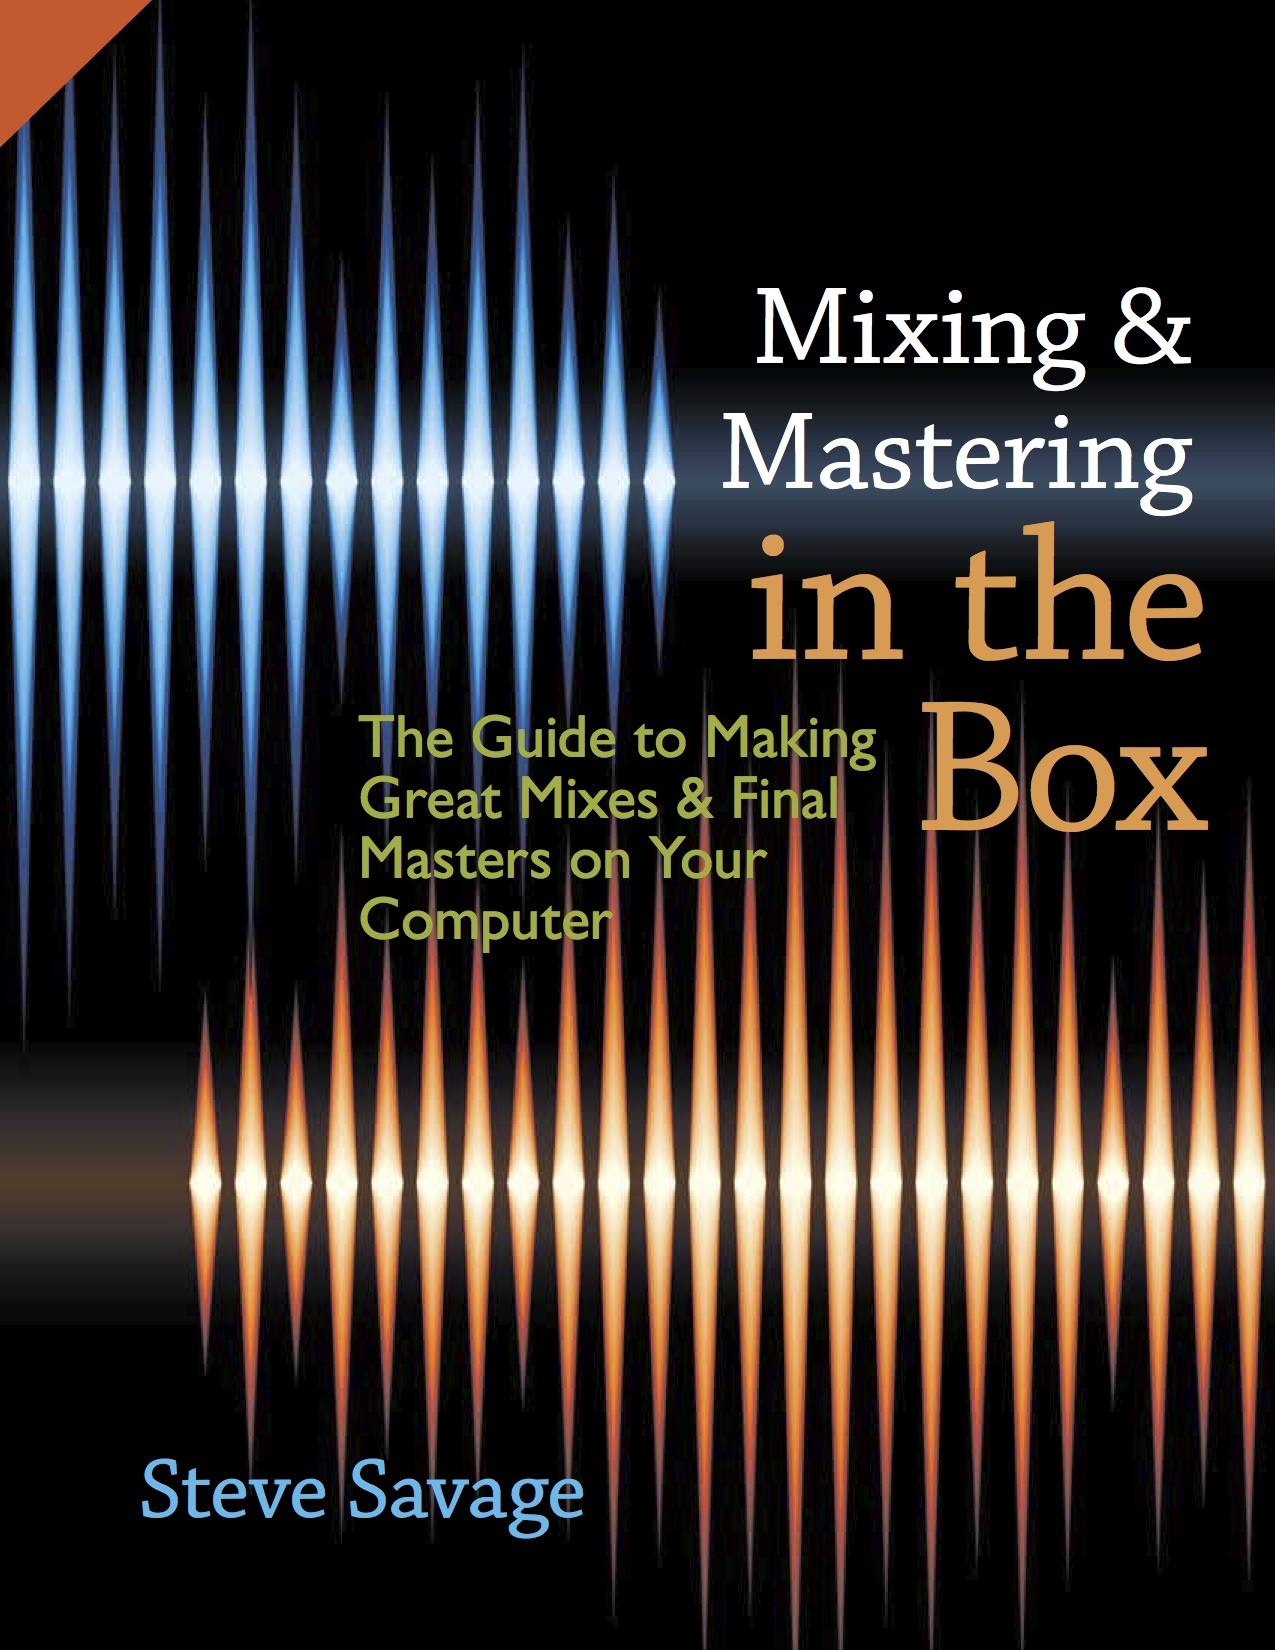 Mixing & Mastering in the Box by Steve Savage